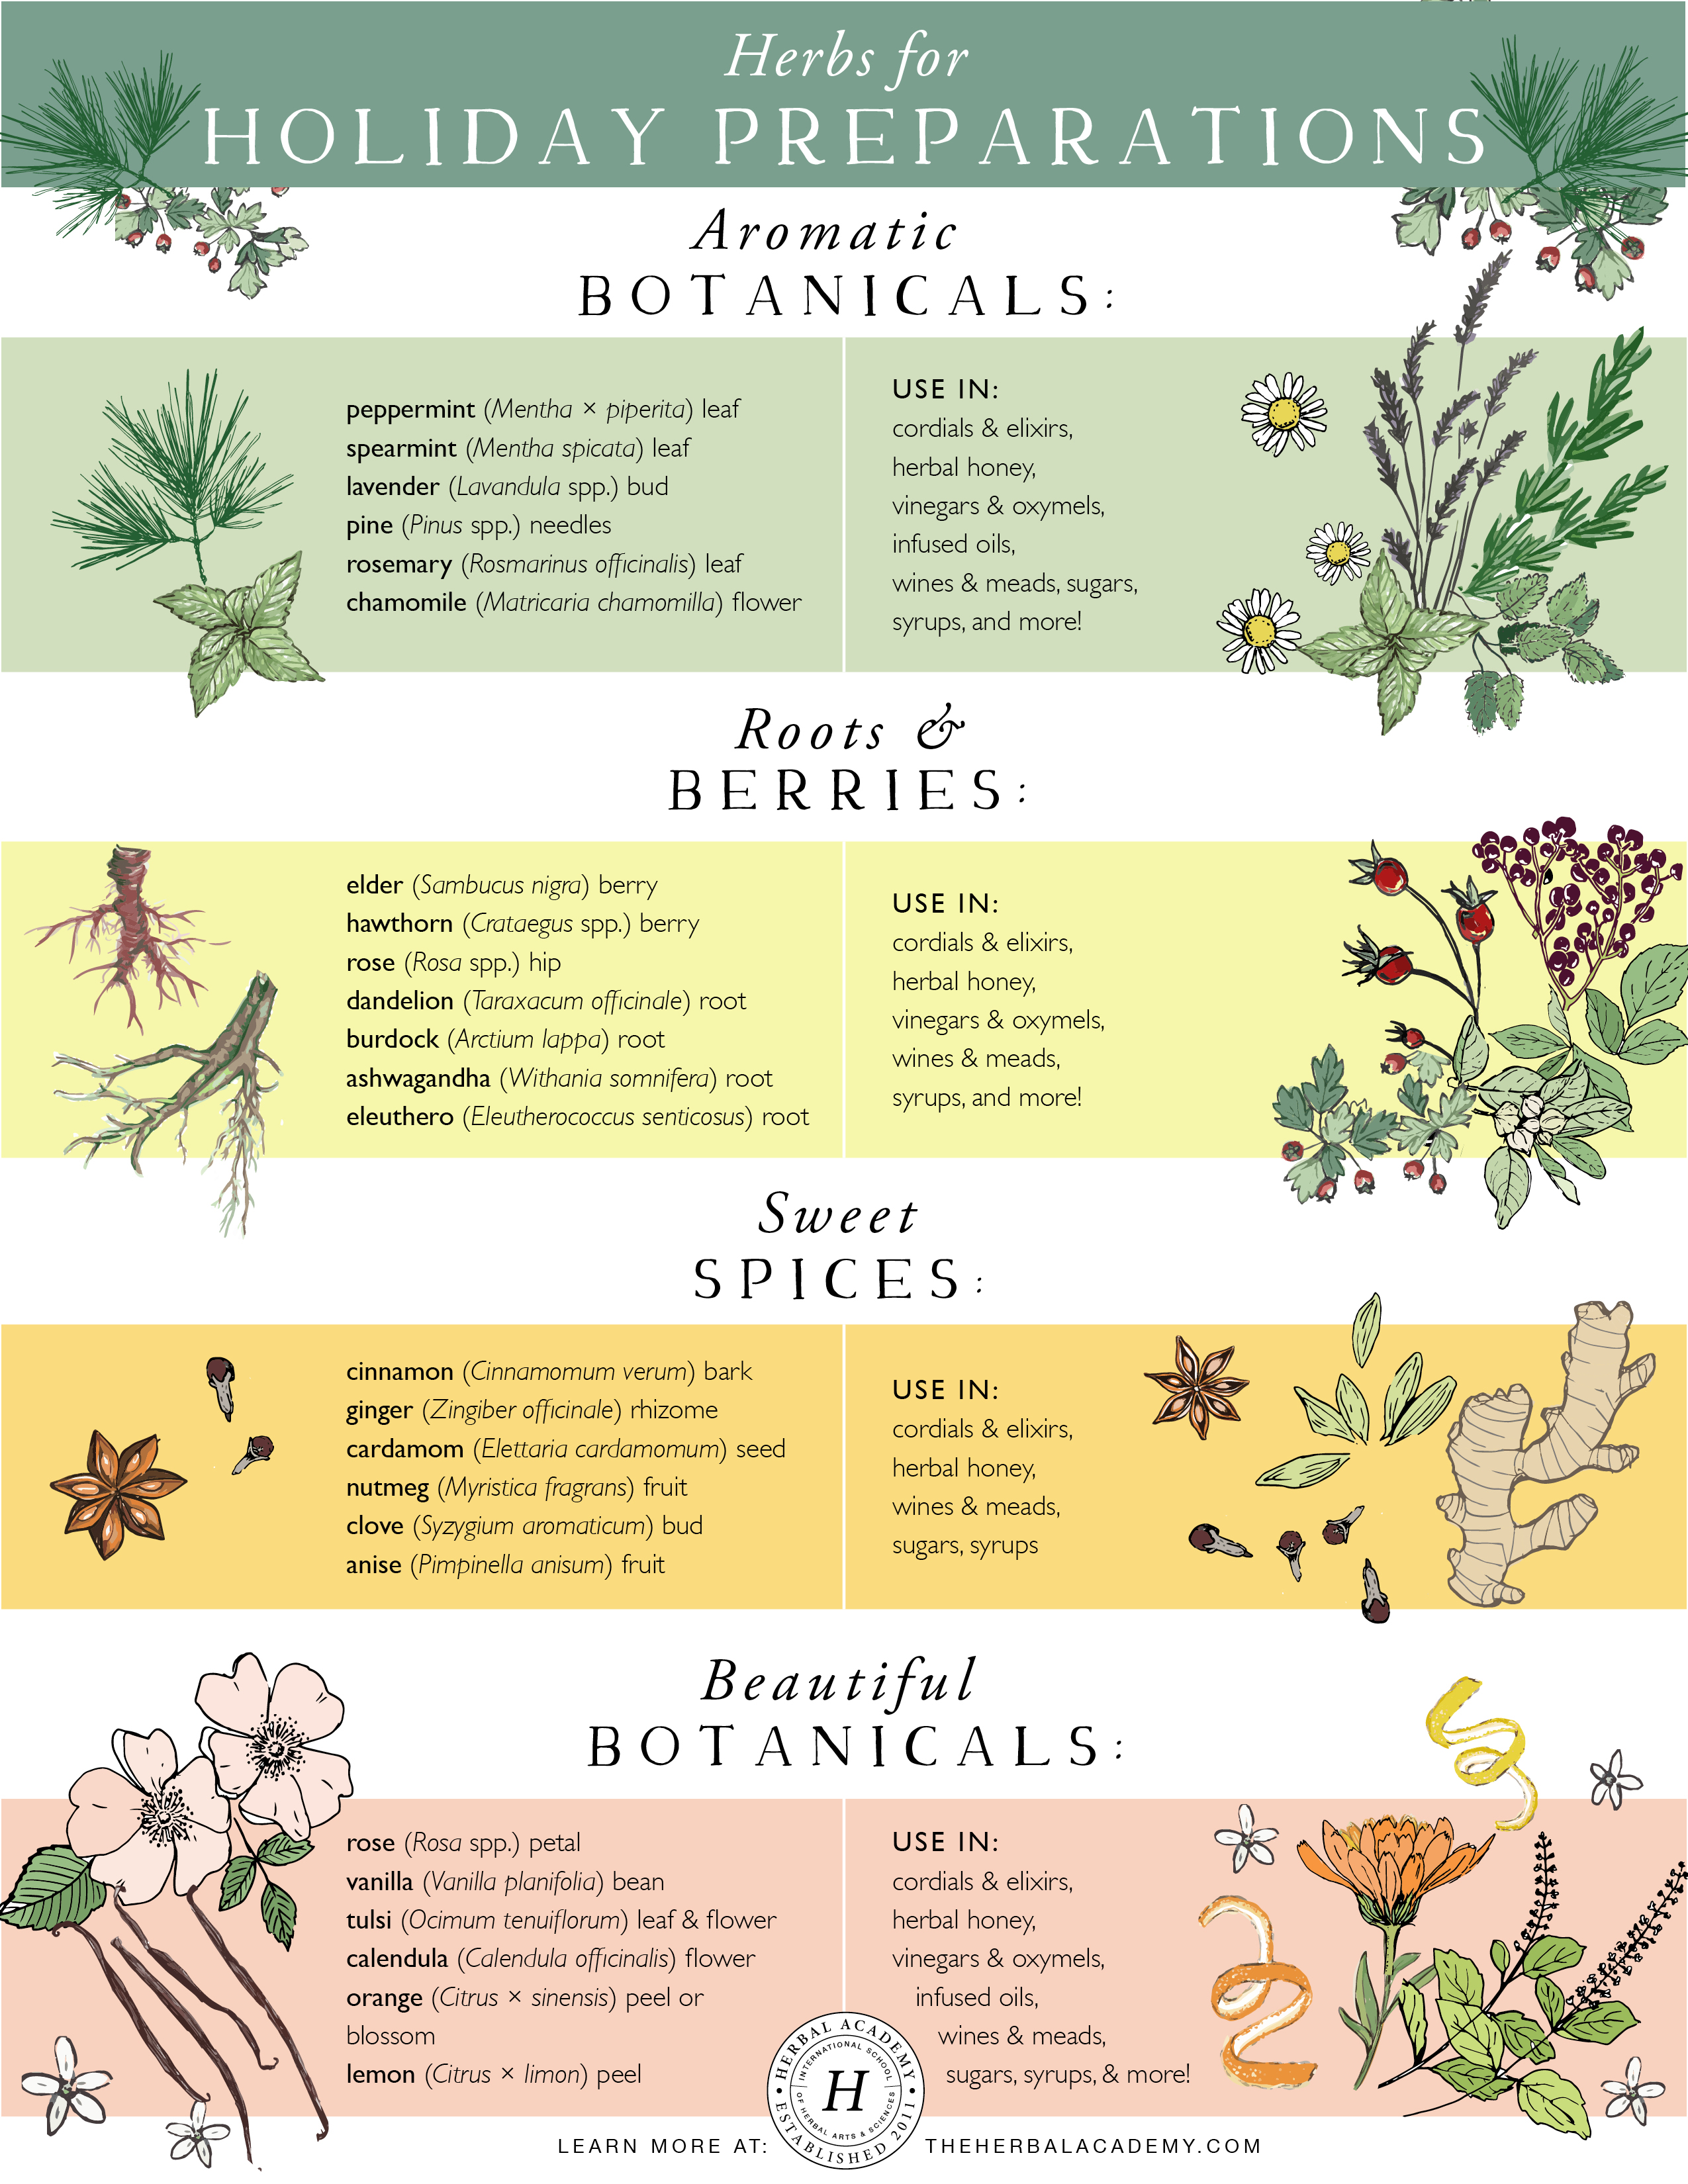 Herbs for Holiday Preparations | Herbal Academy | Here's a list of herbs that often make their way into lovely herbal holiday preparations that can, in turn, become beautiful gifts and accompaniments to long winter evenings by the fireside.